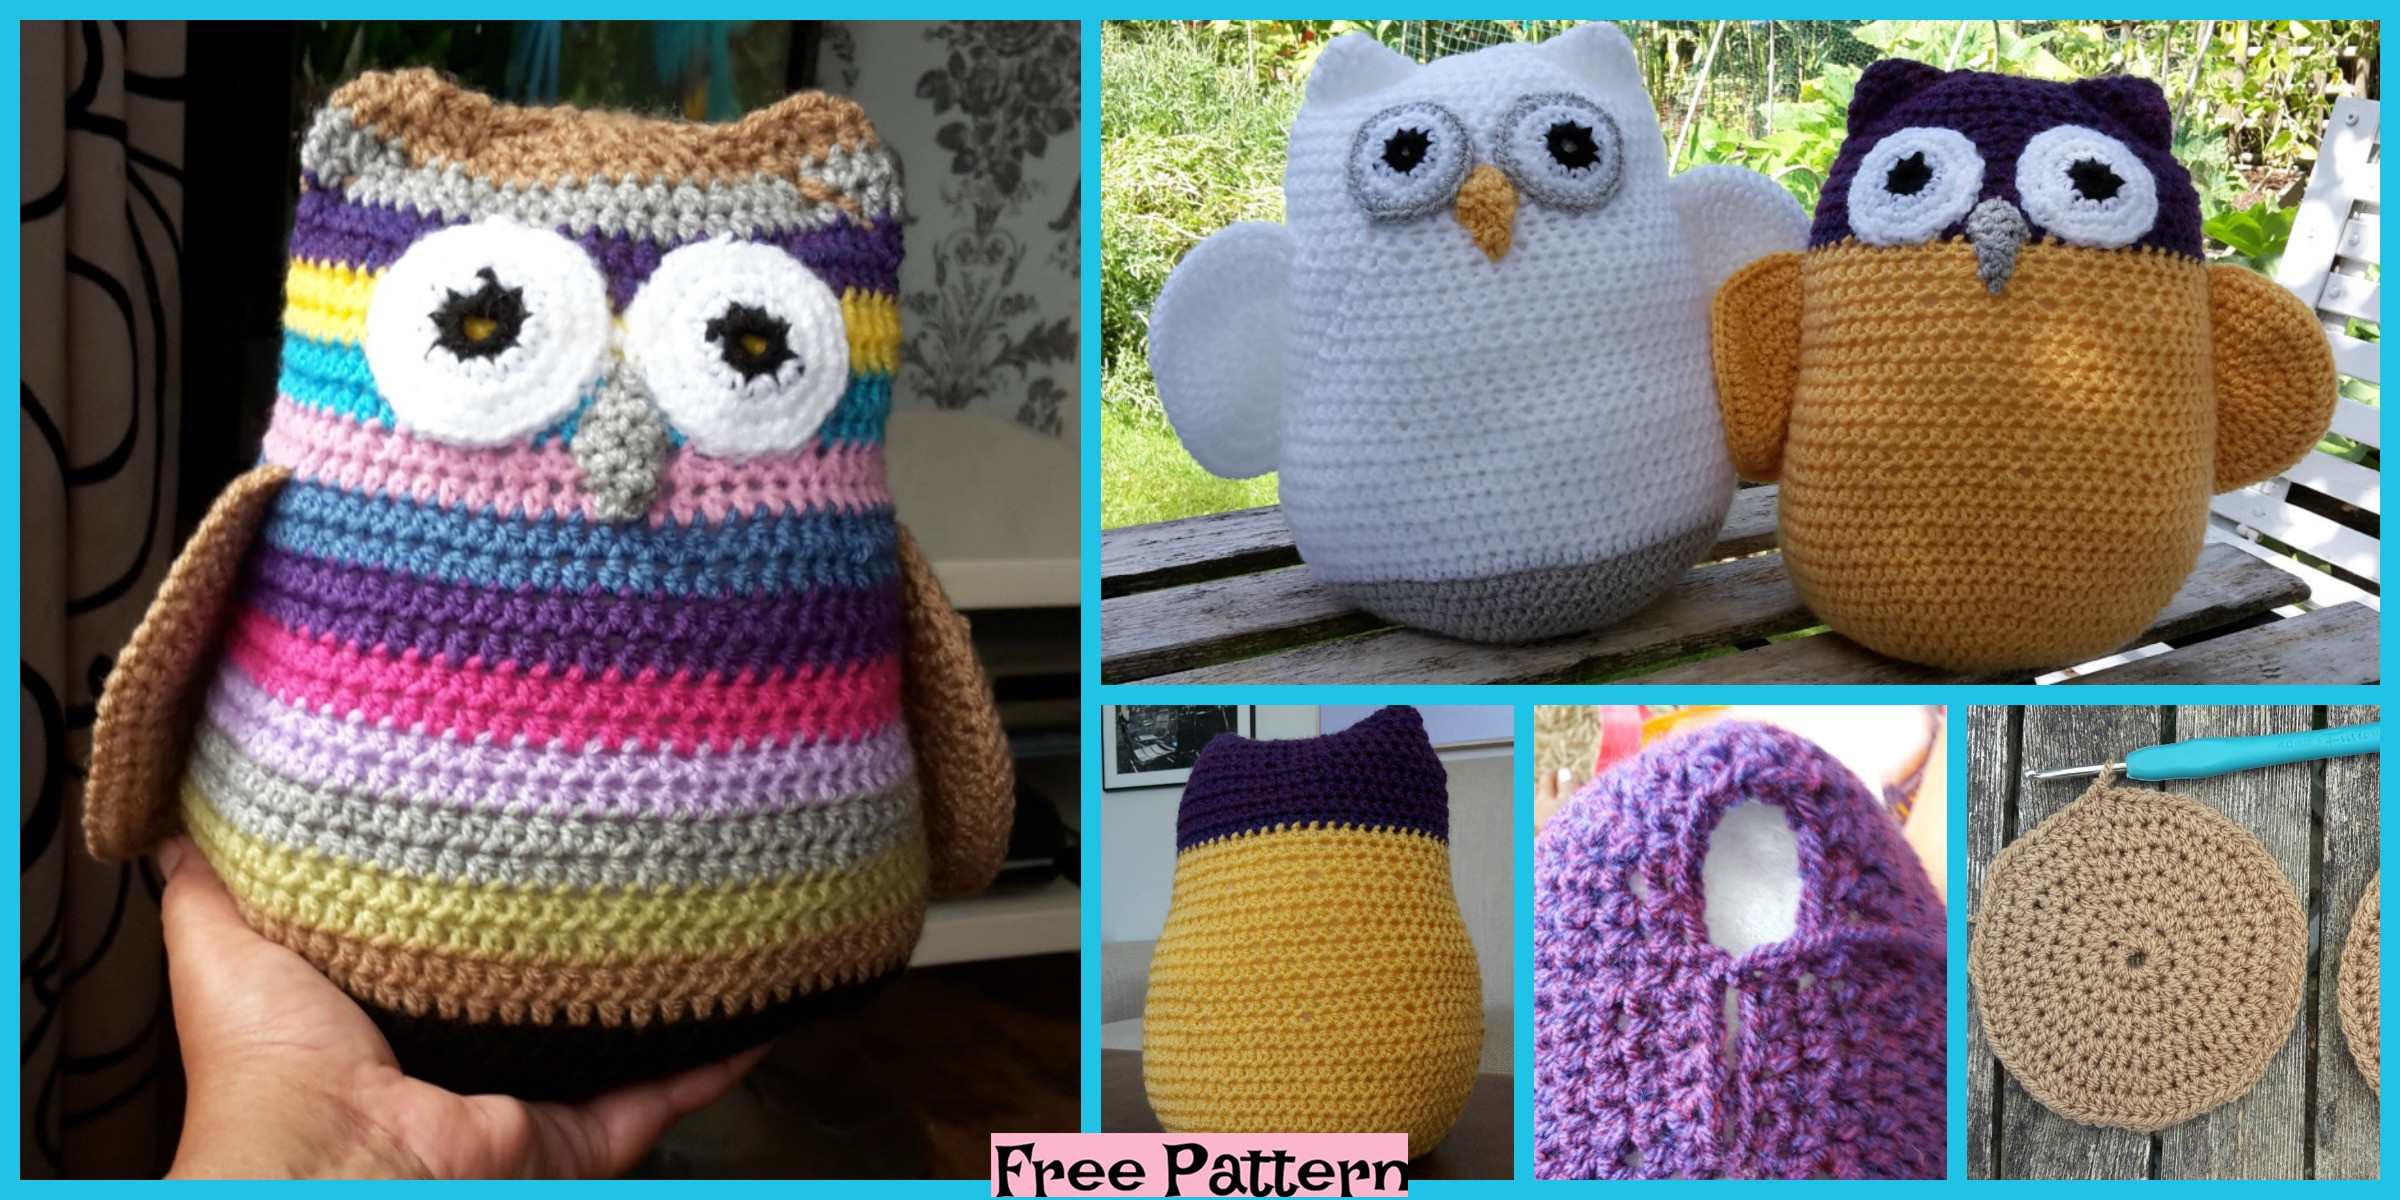 Crochet Three Fat Owls – Free Pattern